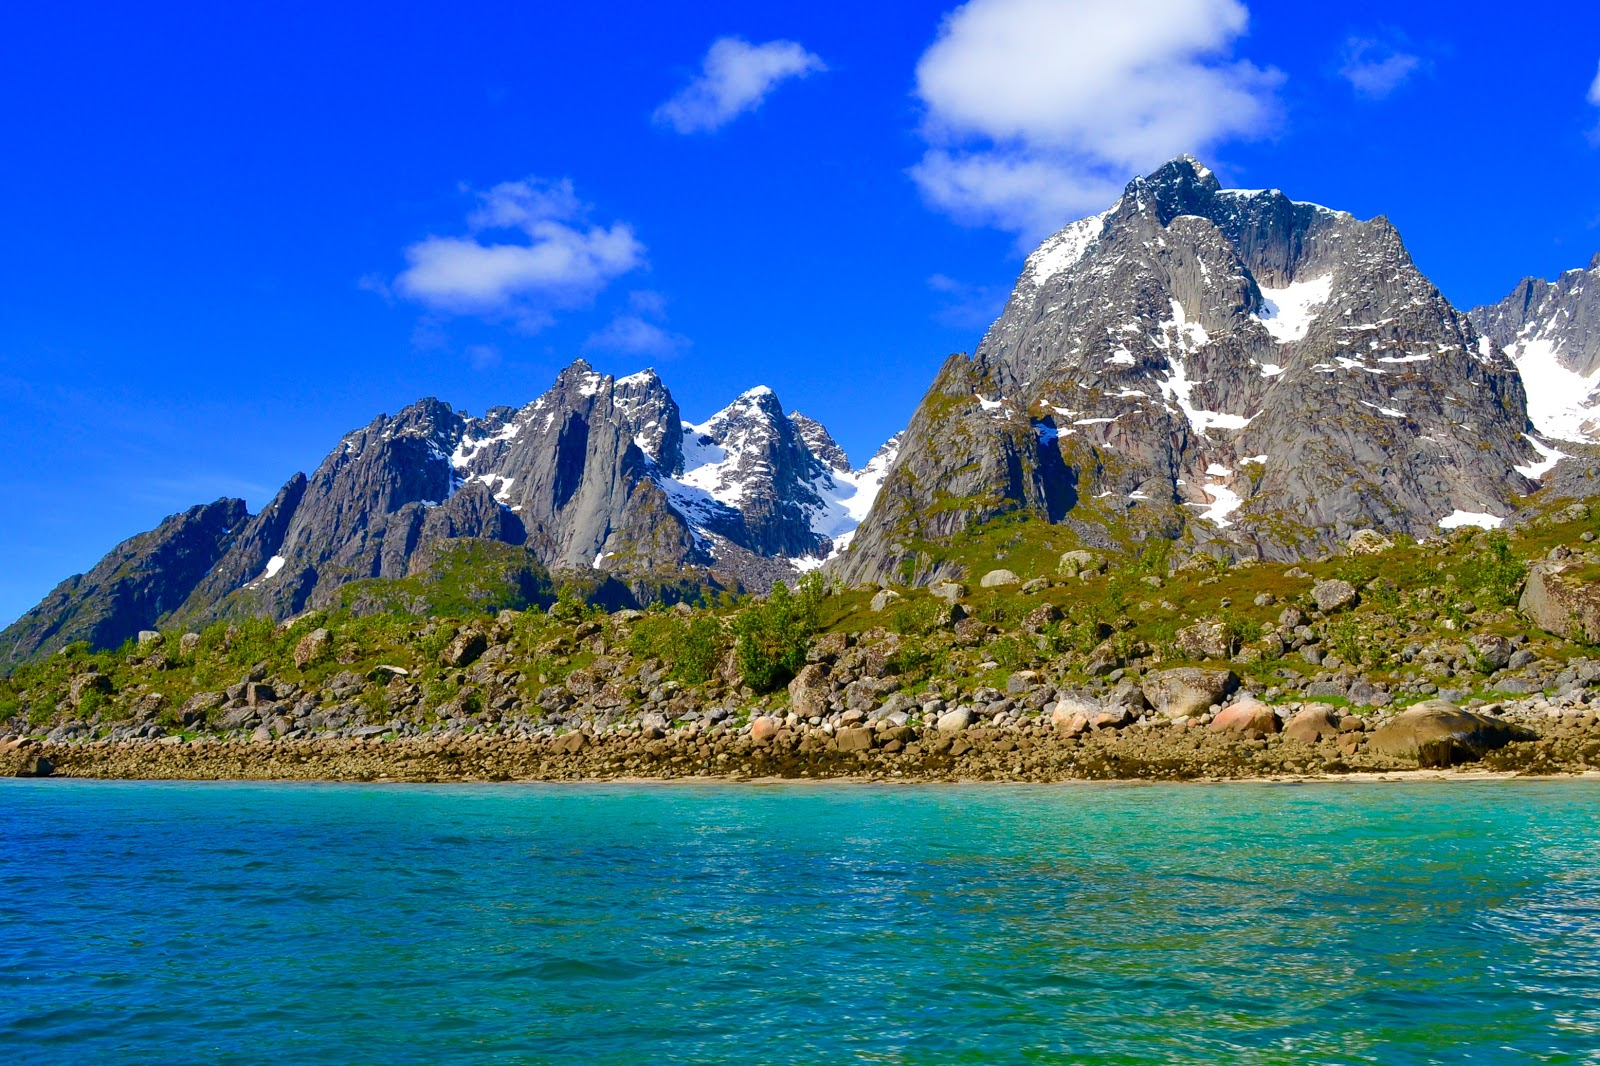 Beautiful Norway as seen aboard the ferry from Gryllefjord to Andenes.